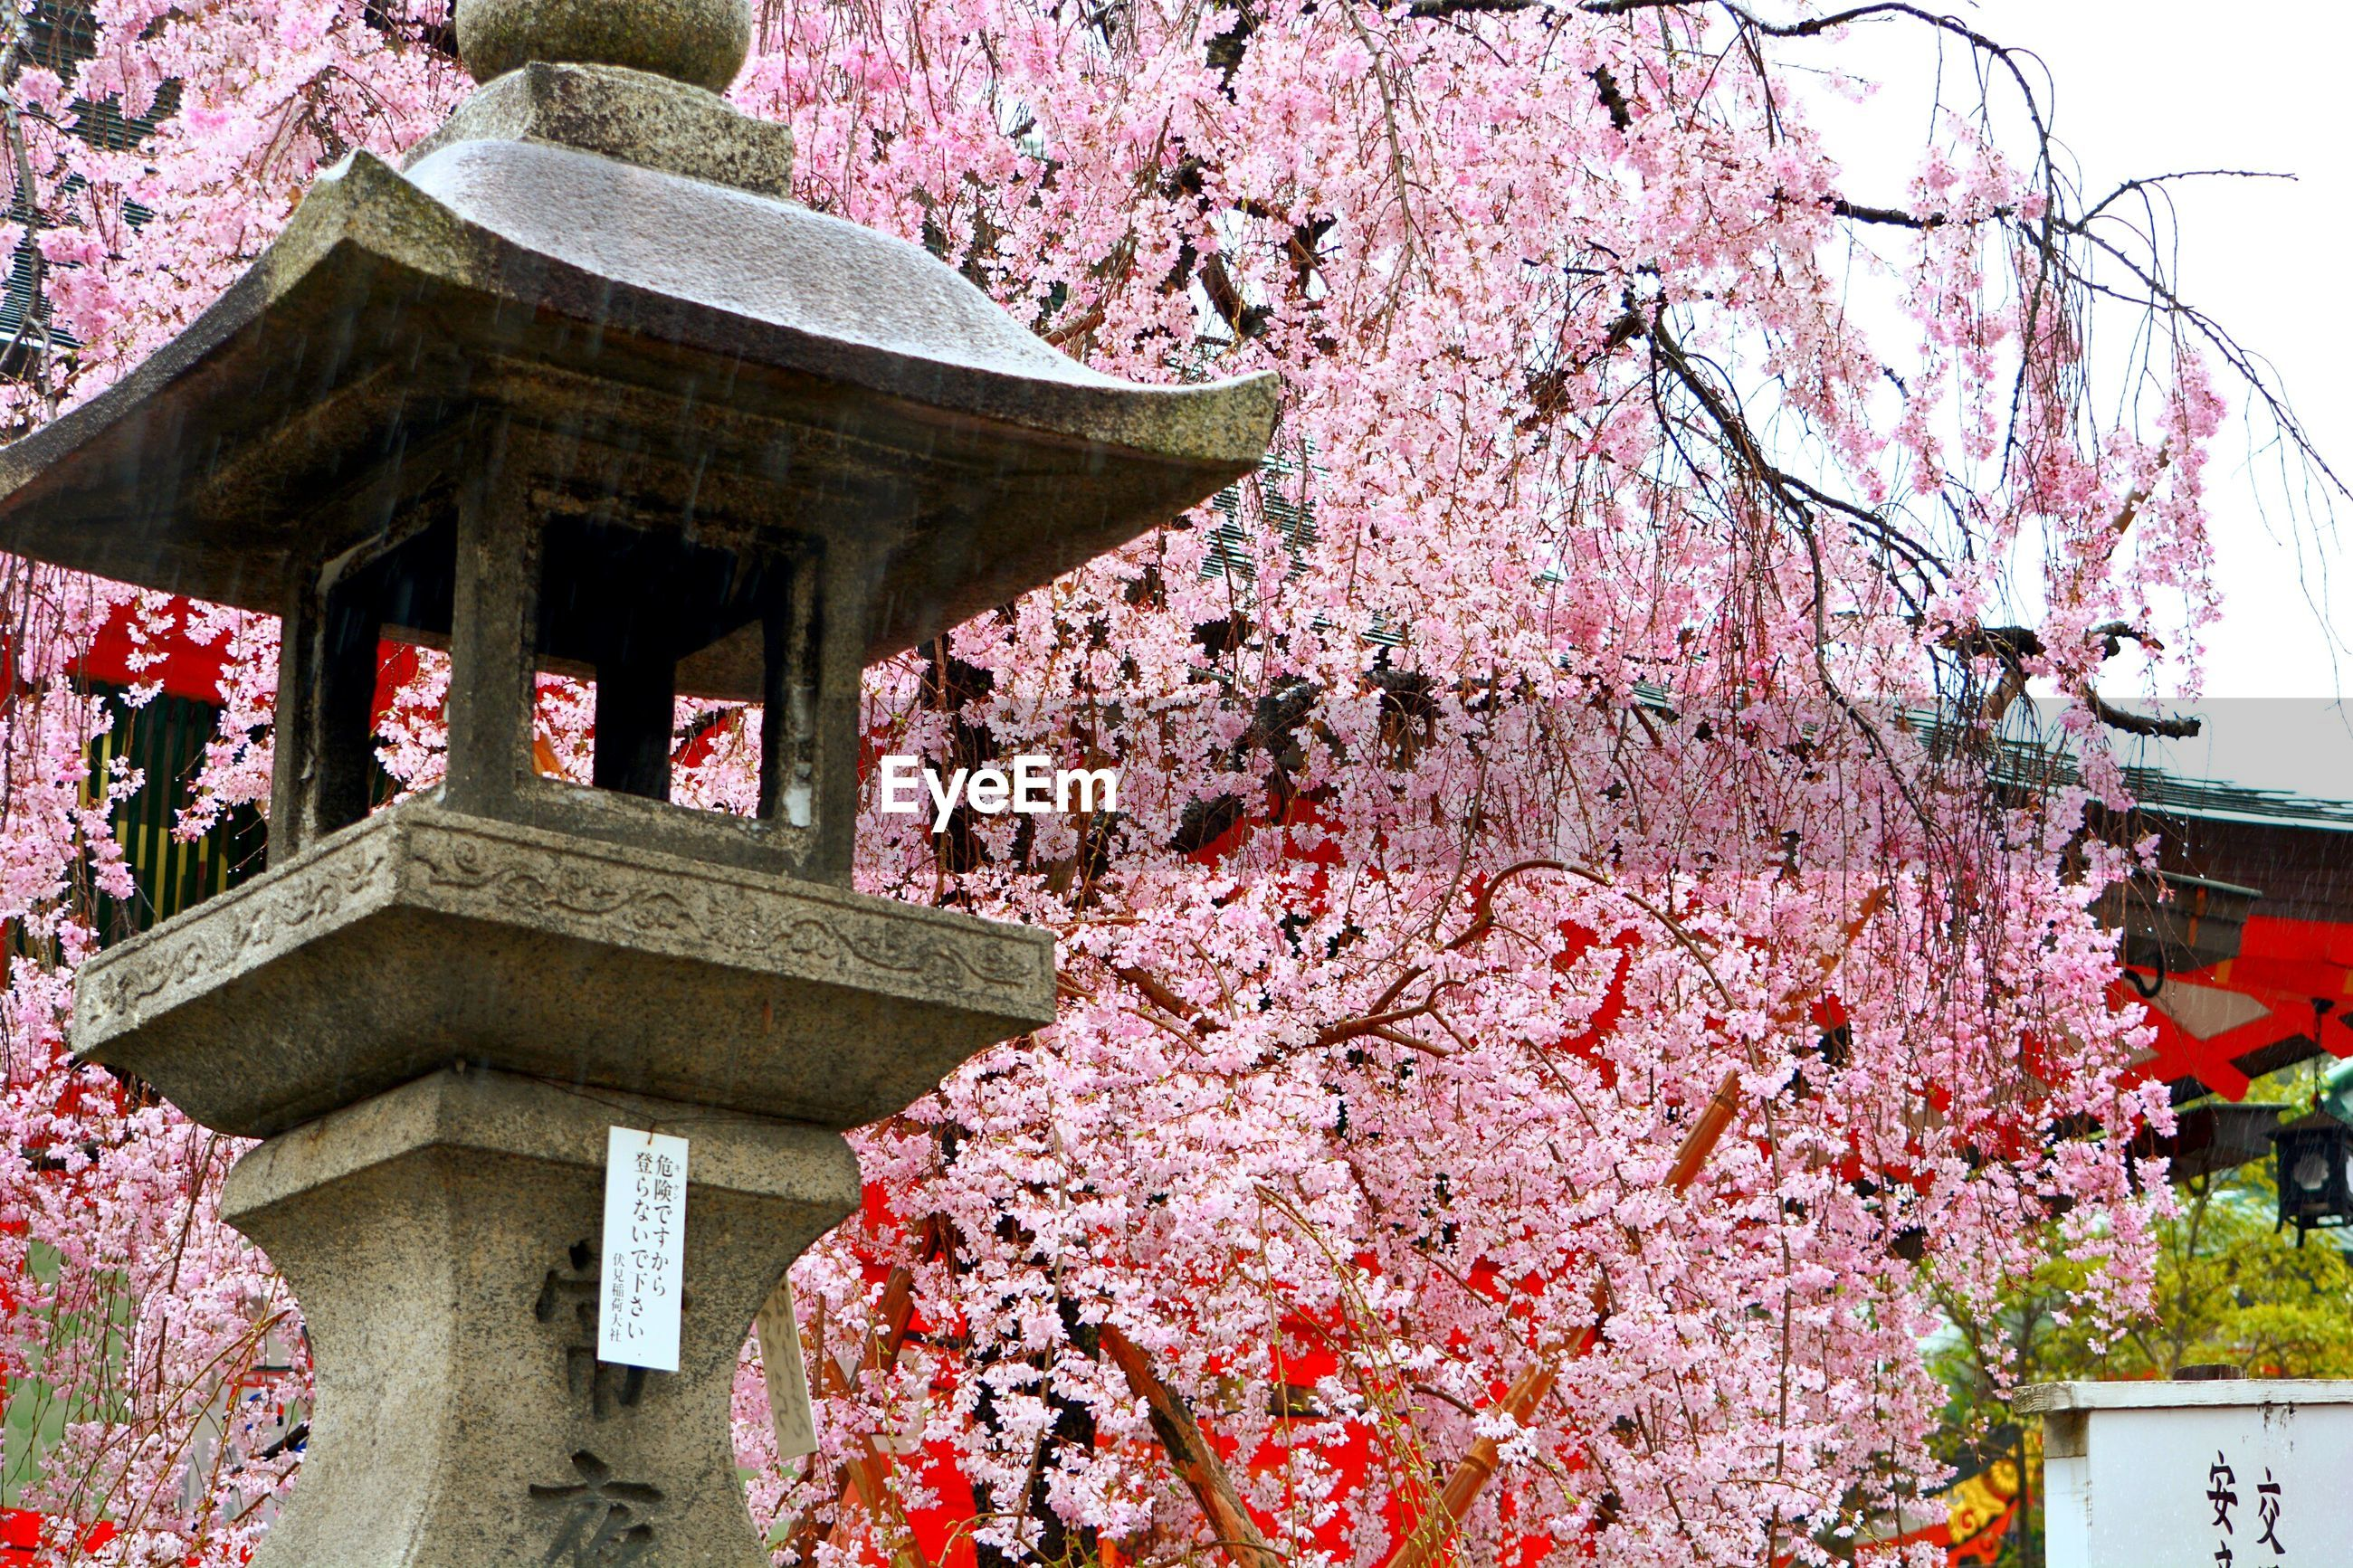 flower, pink color, built structure, architecture, freshness, tree, building exterior, growth, place of worship, religion, fragility, plant, temple - building, spirituality, petal, blooming, blossom, nature, beauty in nature, low angle view